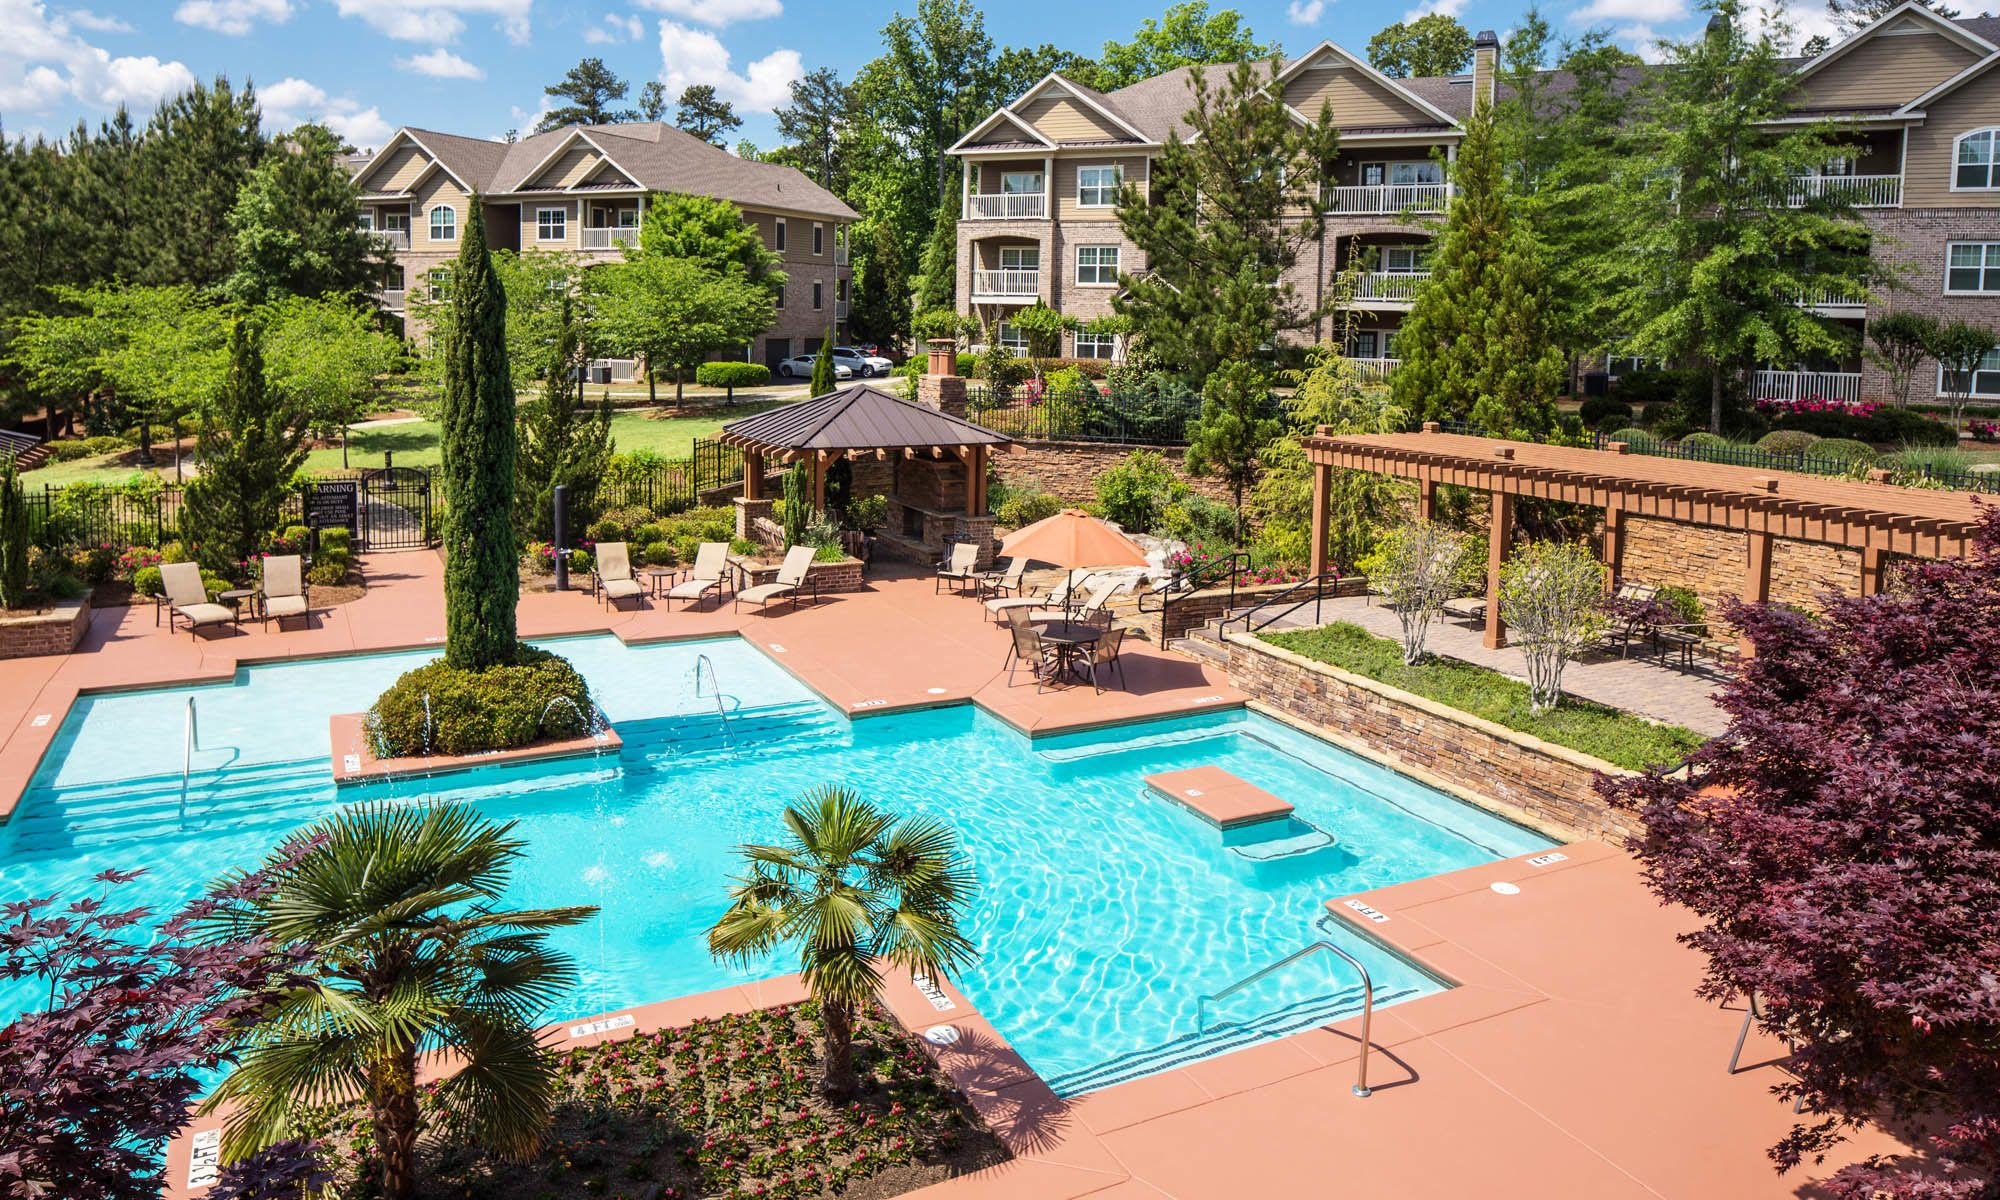 Apartments in Newnan, GA